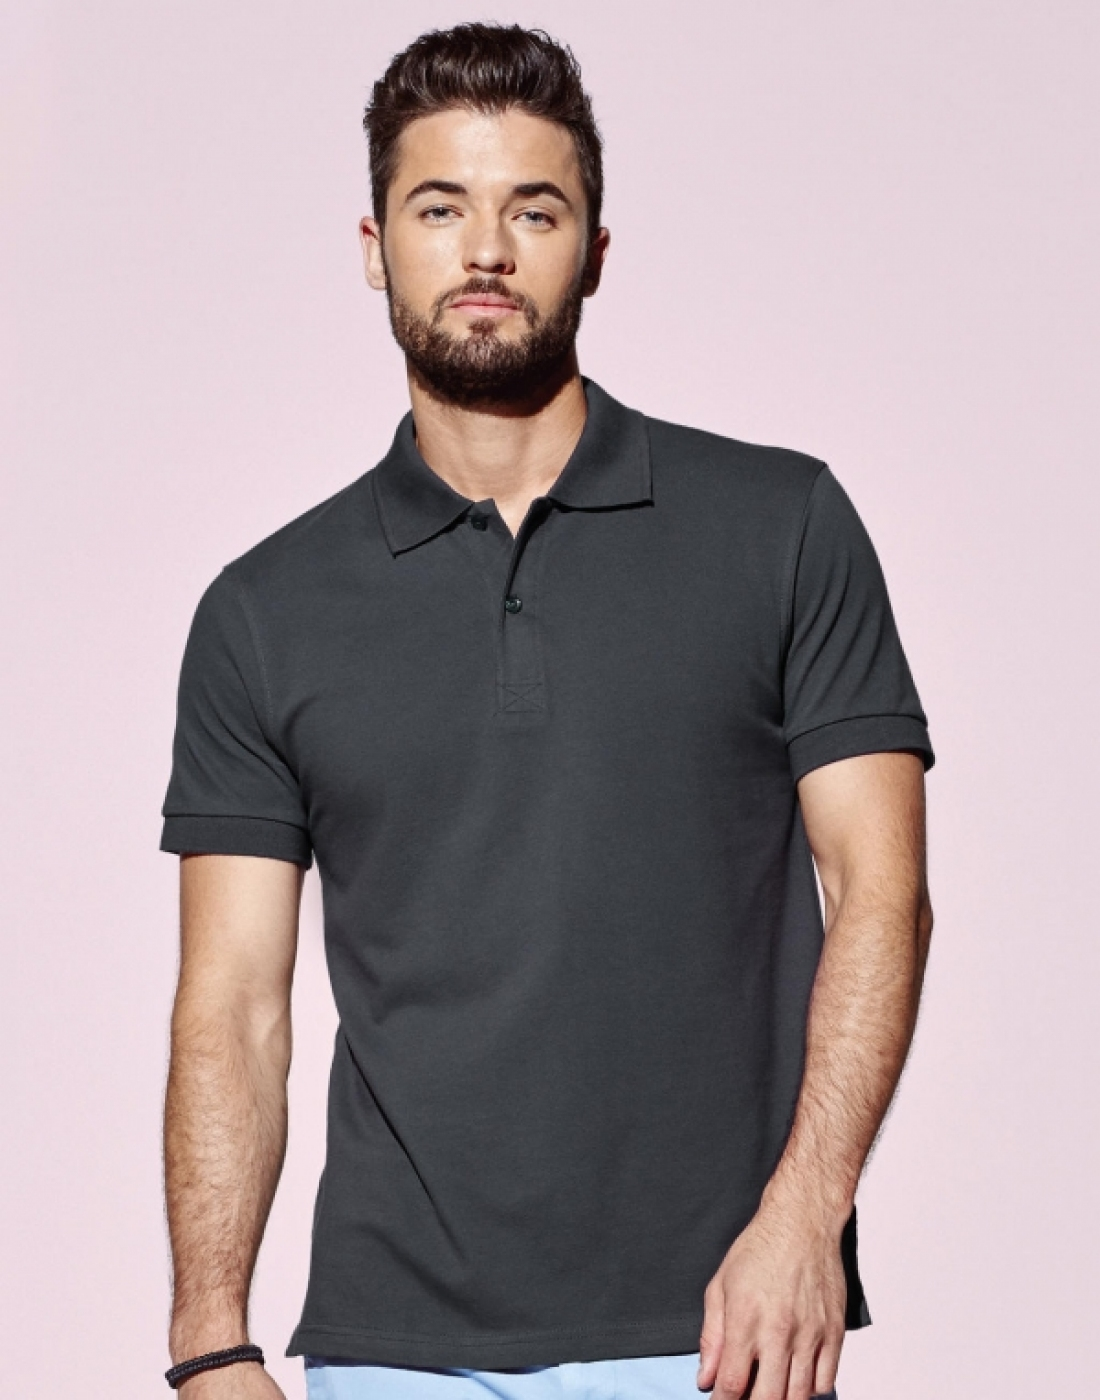 Tricou barman sau ospatar, model polo pique 225g regular fit, de barbat